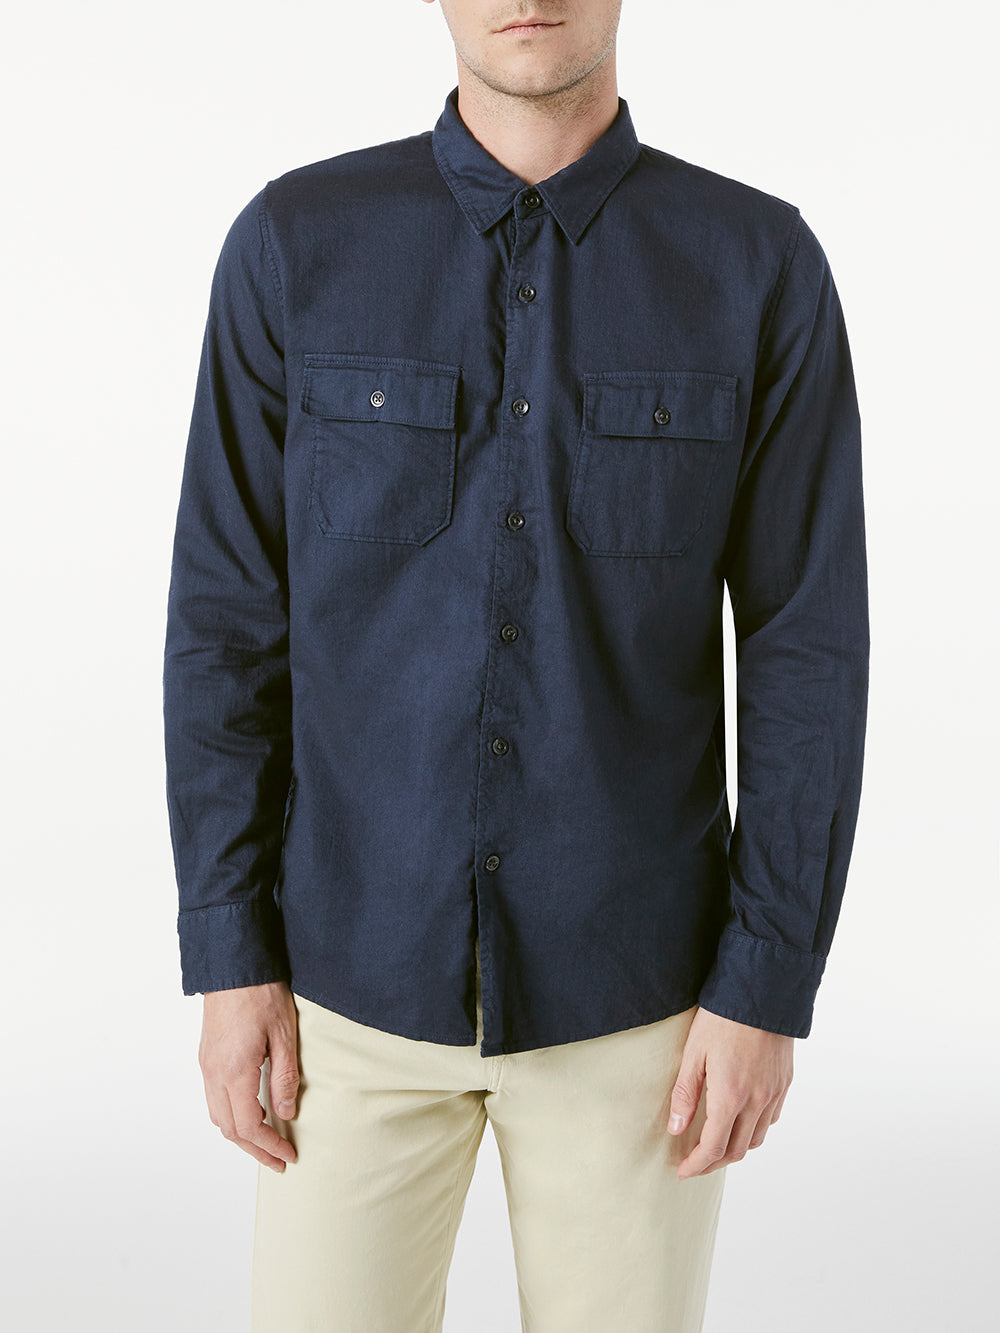 Double Pocket Long Sleeve Button Down Shirt - Navy-FRAME-Over the Rainbow